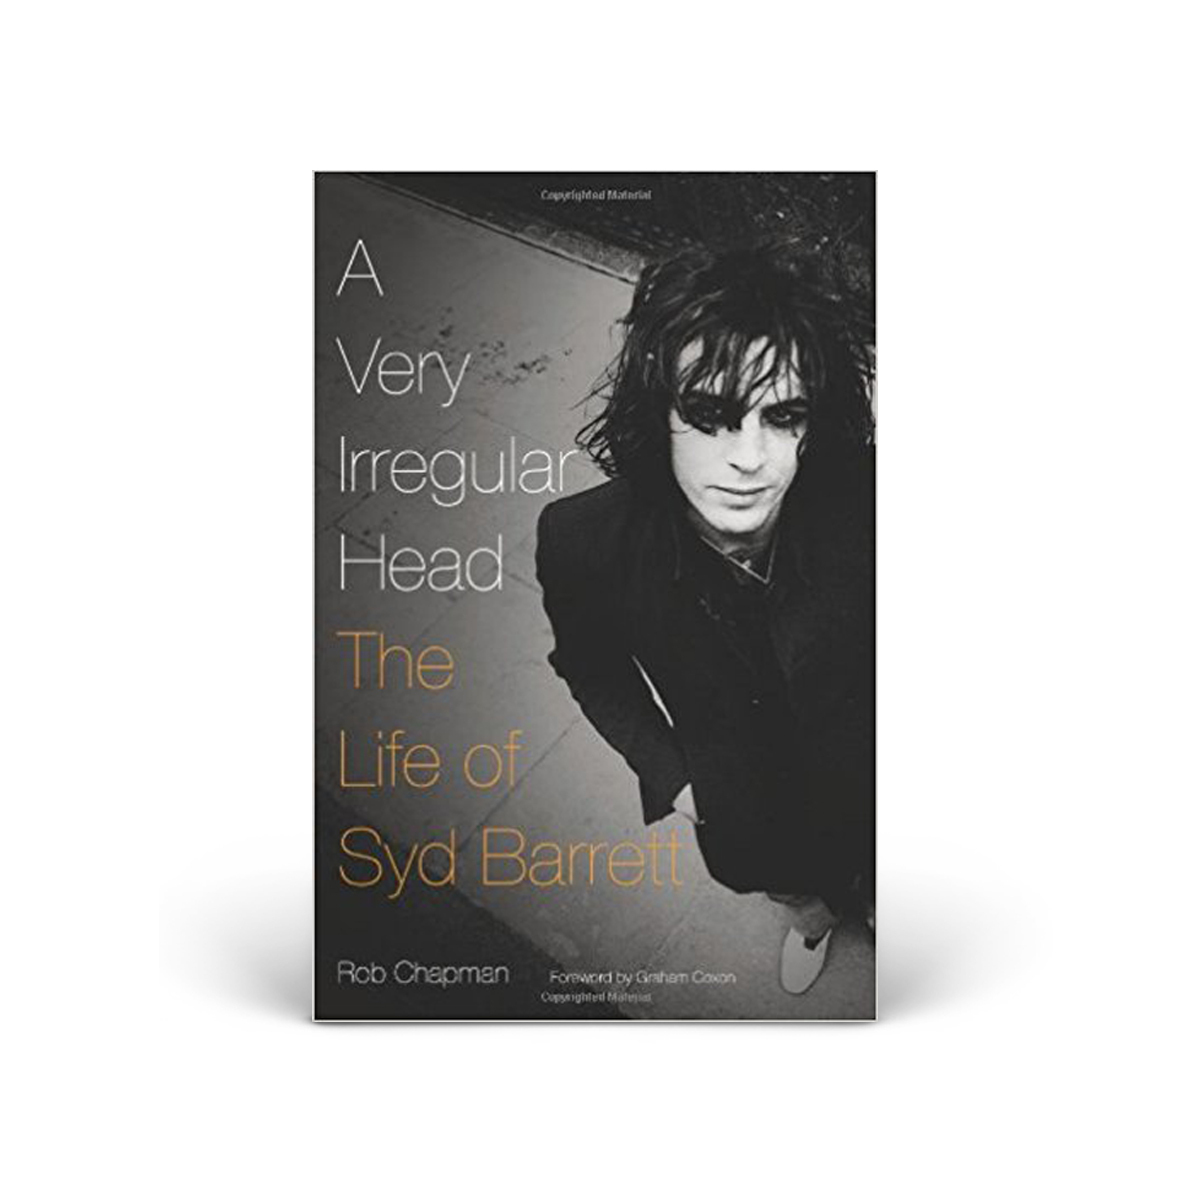 A Very Irregular Head: The Life of Syd Barrett (Book)